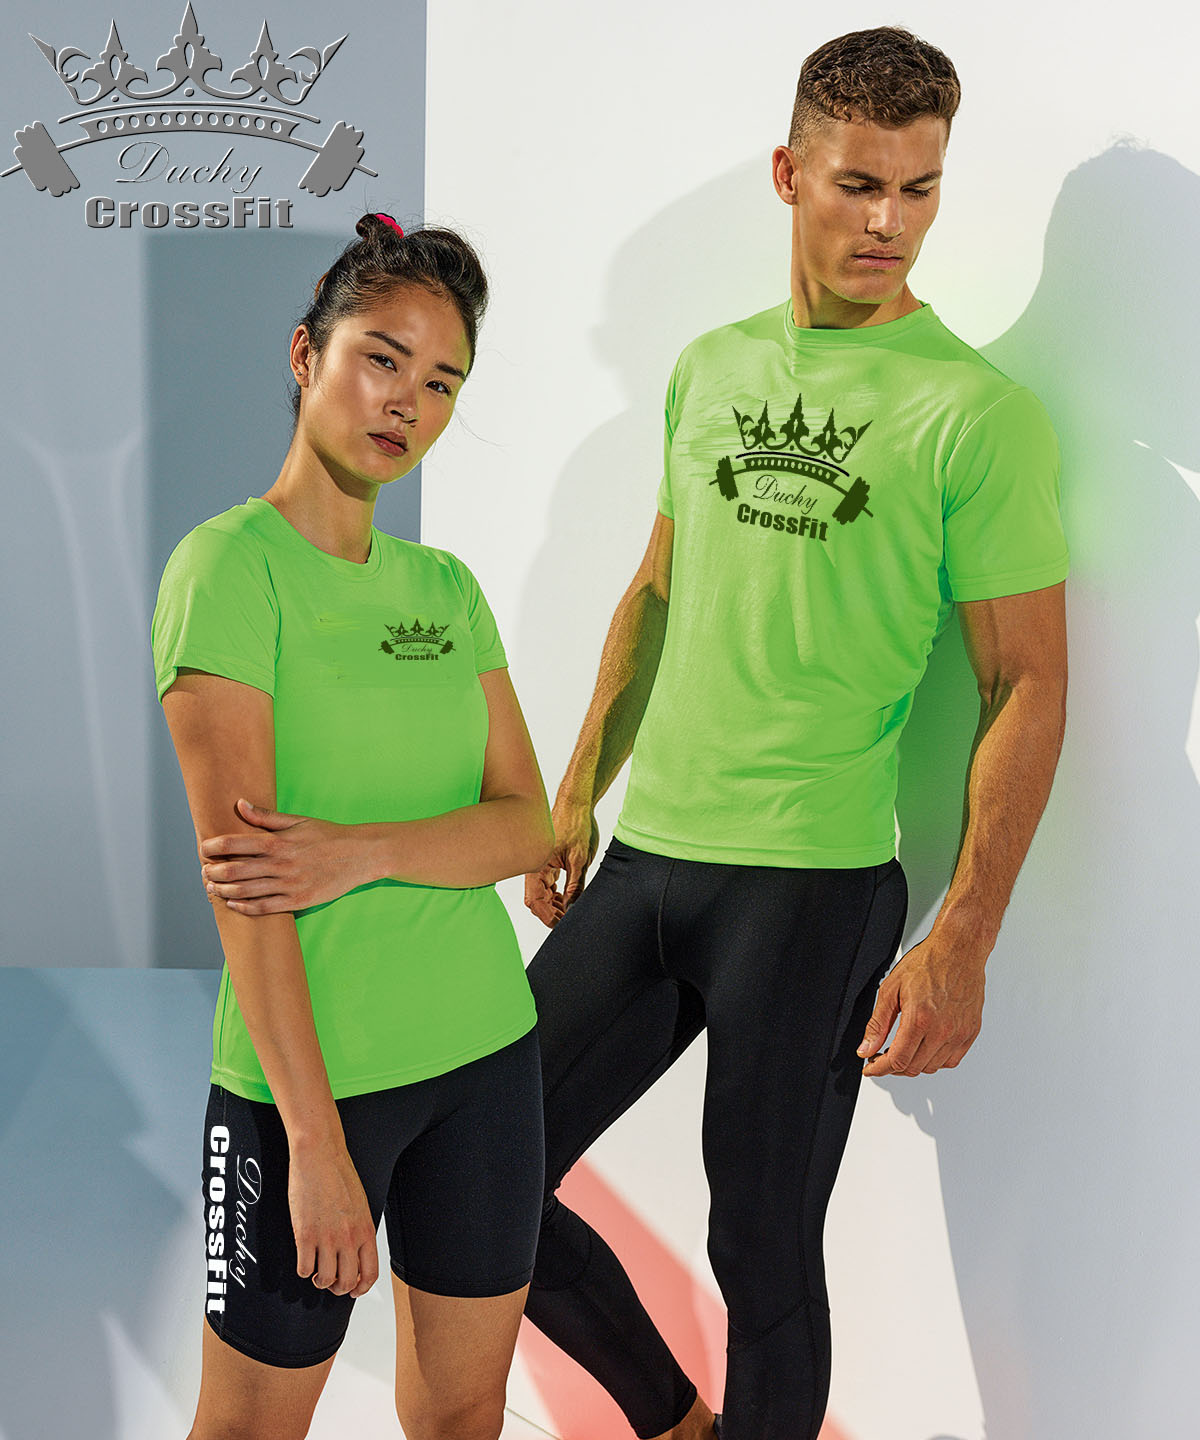 Duchy Crossfit Workout Tee